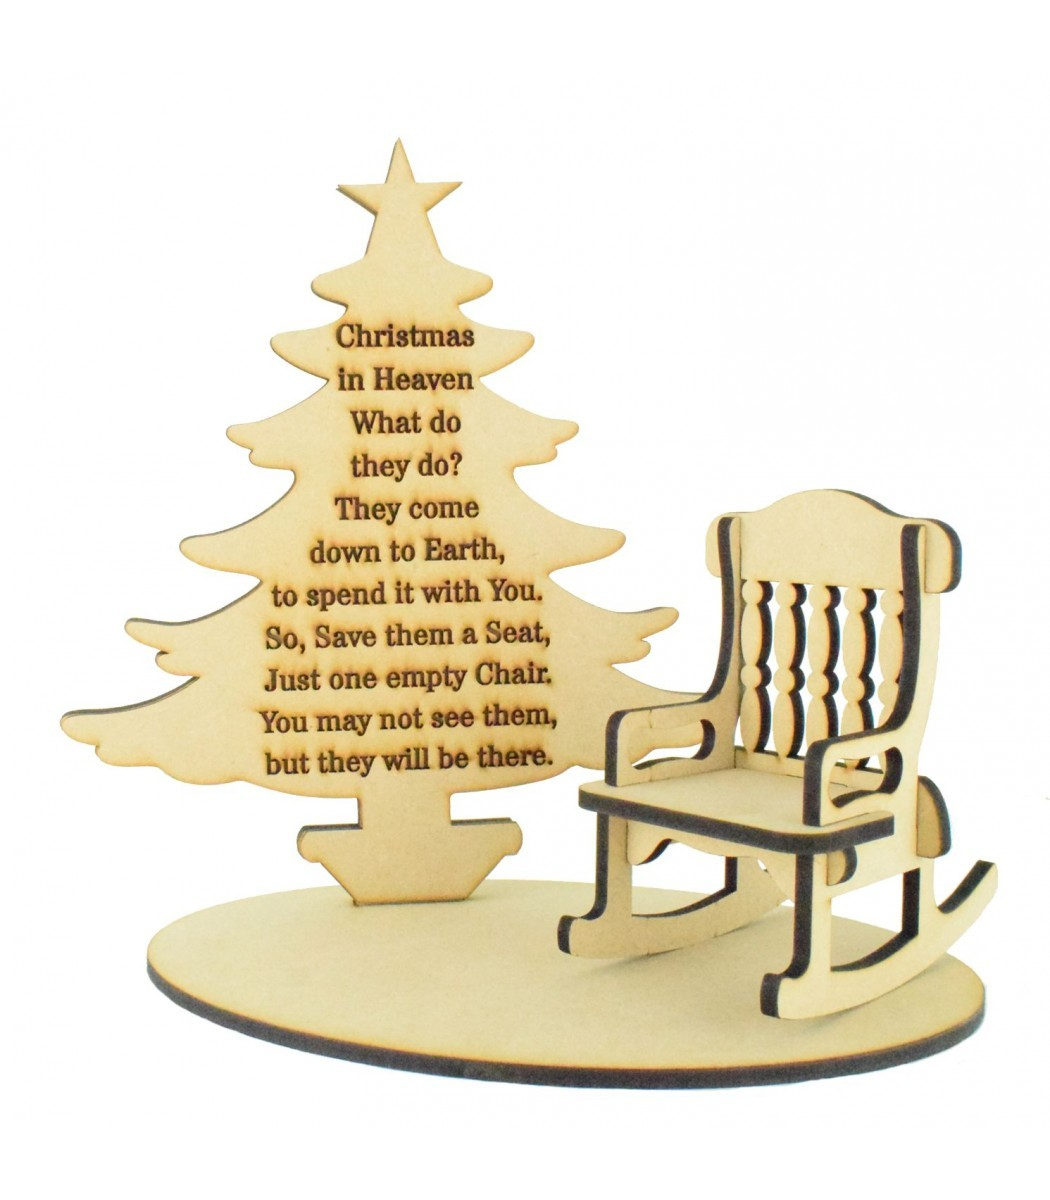 Christmas In Heaven What Do They Do.Laser Cut Christmas In Heaven Quote On A Stencil Plaque With Christmas Tree Rocking Chair And Base Set